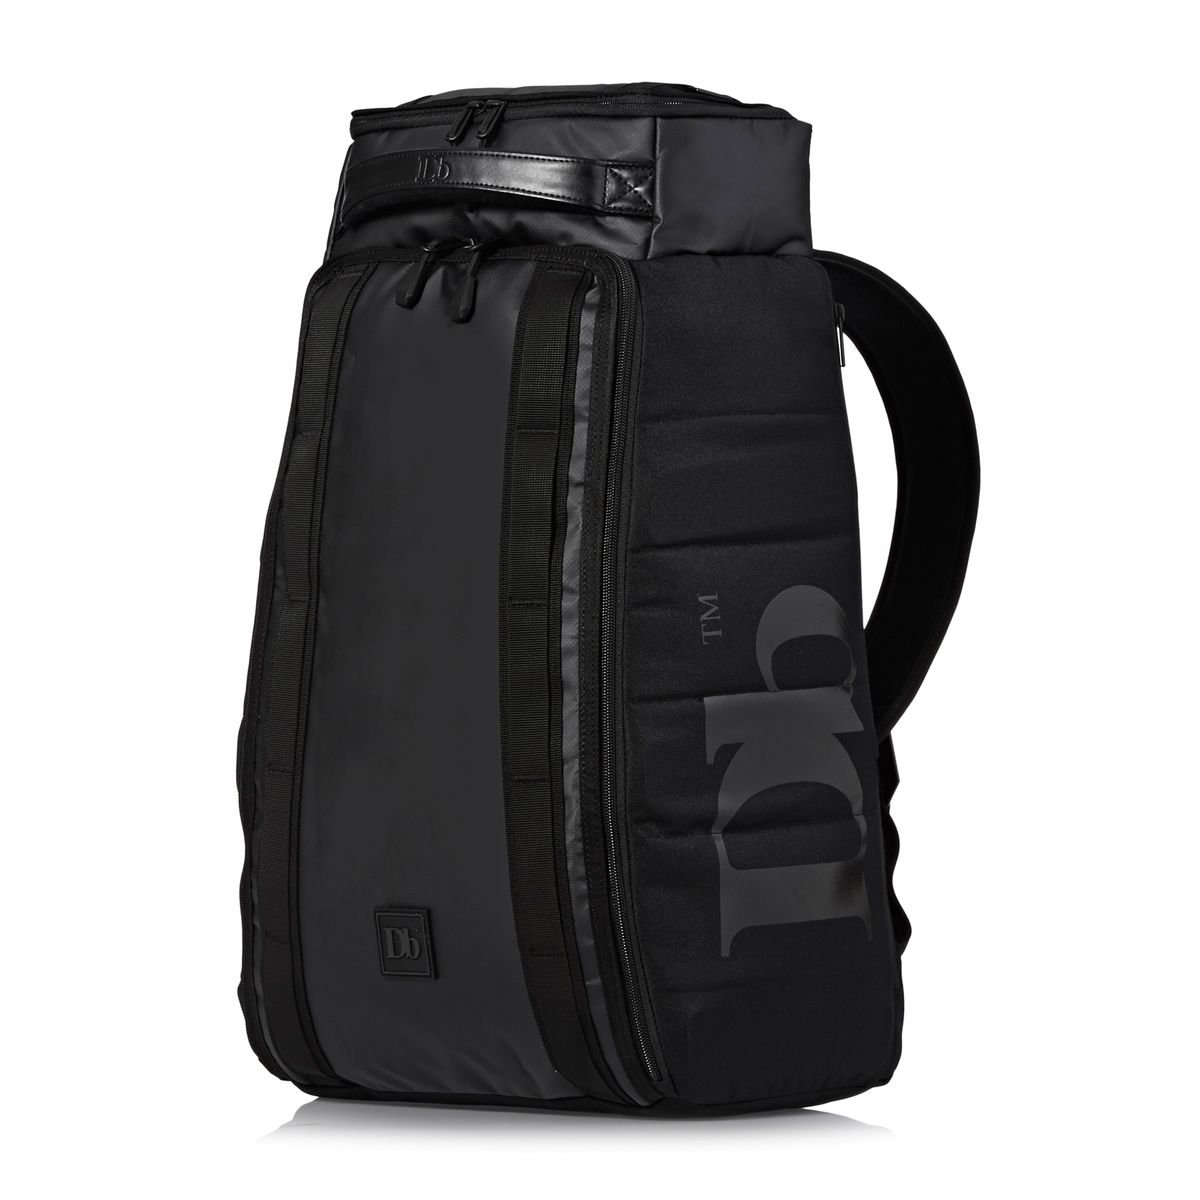 The Douchebag Hugger 30L - Black Out Rucksack travel product recommended by Mika Kujapelto on Lifney.